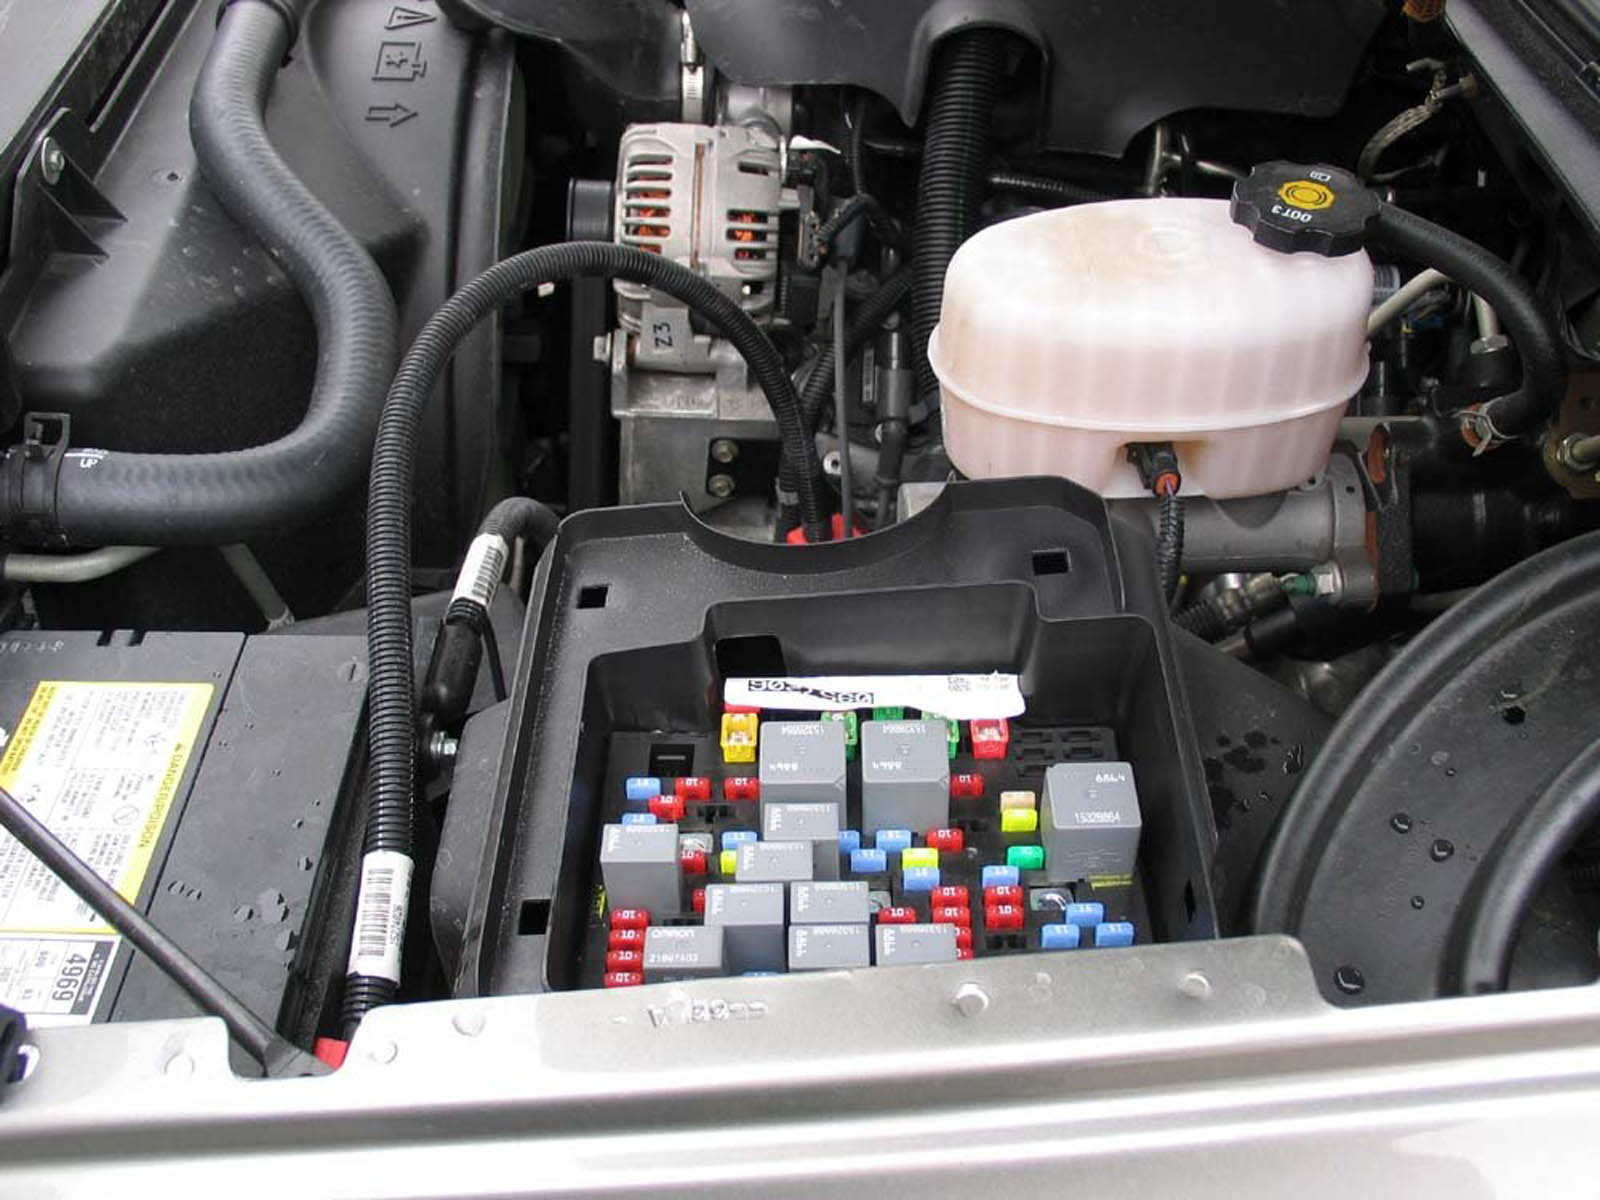 2006 Chevy Suburban Fuse Box Block And Schematic Diagrams 05 Chevrolet Engine Circuit Rh Chanv Tripa Co 2005 Diagram 0nly